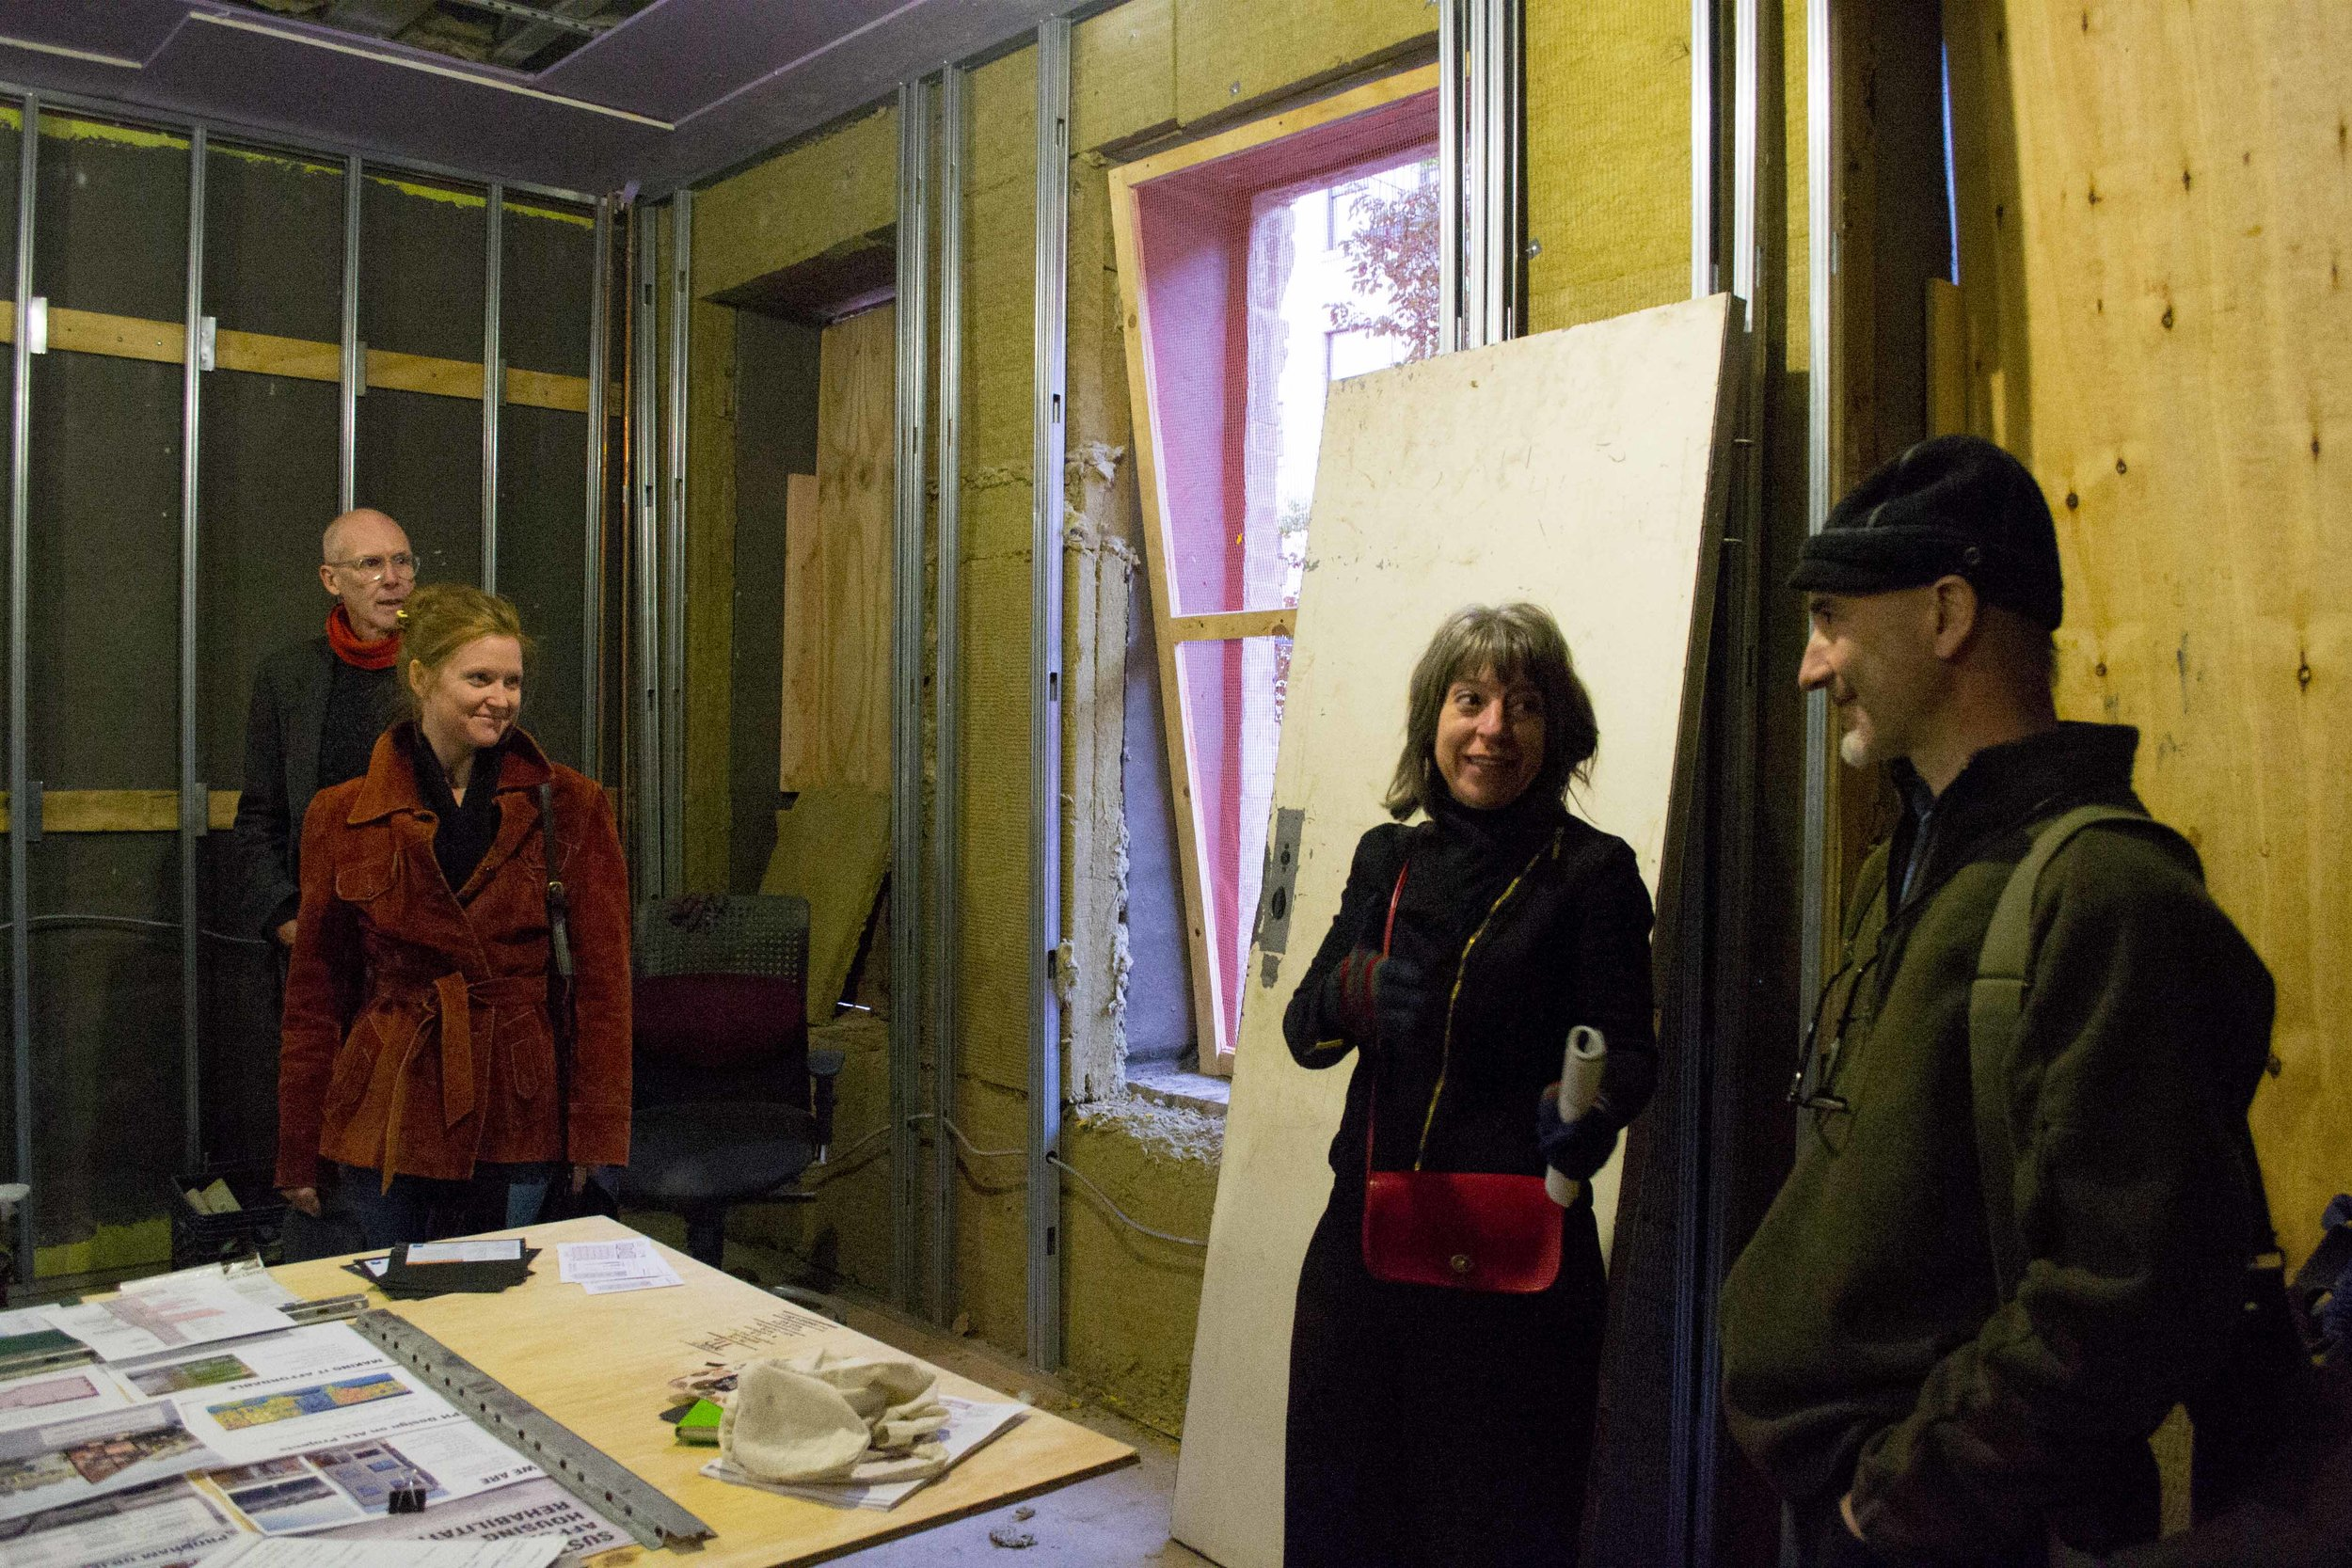 20161111__NY PASSIVE HOUSE DAYS_OPEN HOUSE_PAUL CASTRUCCI ARCHITECT__0113_lowres.jpg